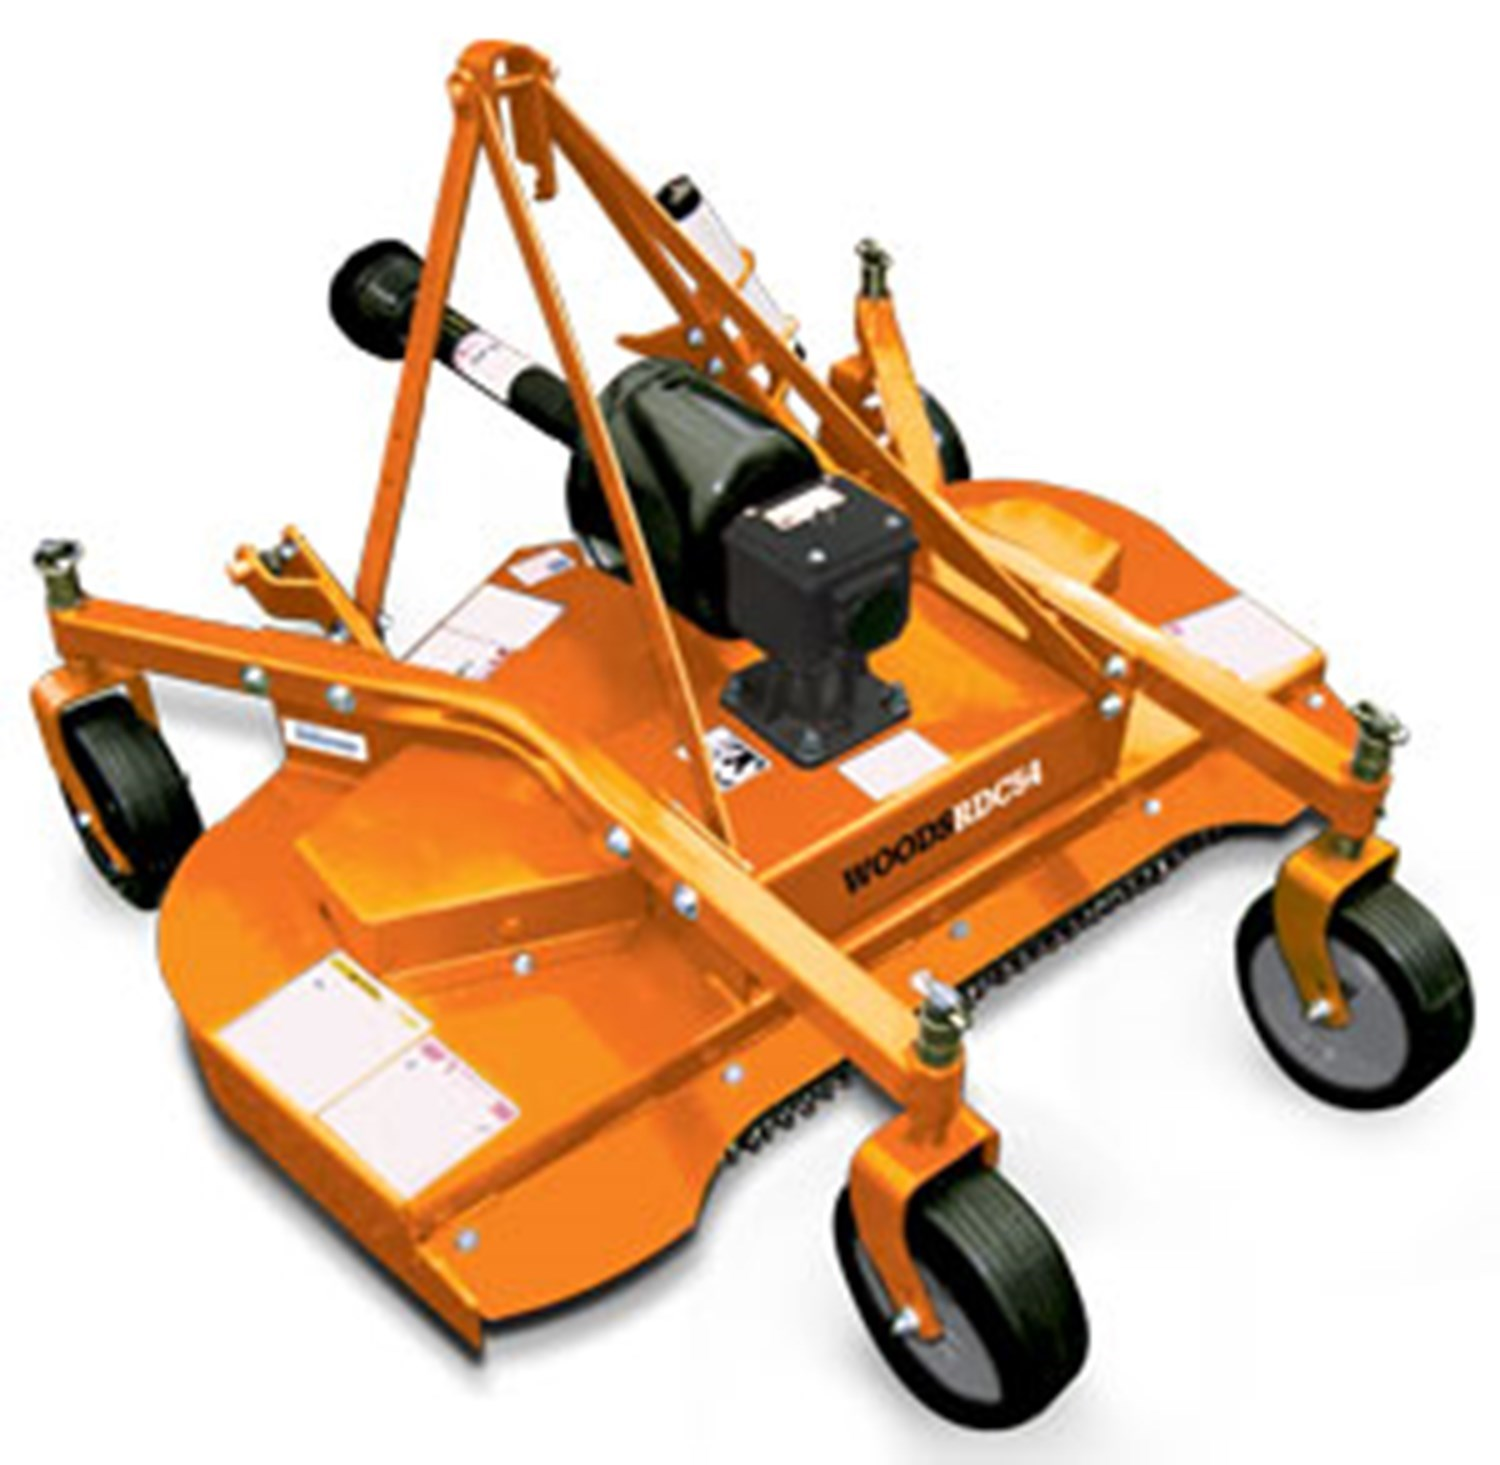 Woods RD Rear-Mount Rear Discharge Finish Mowers Series